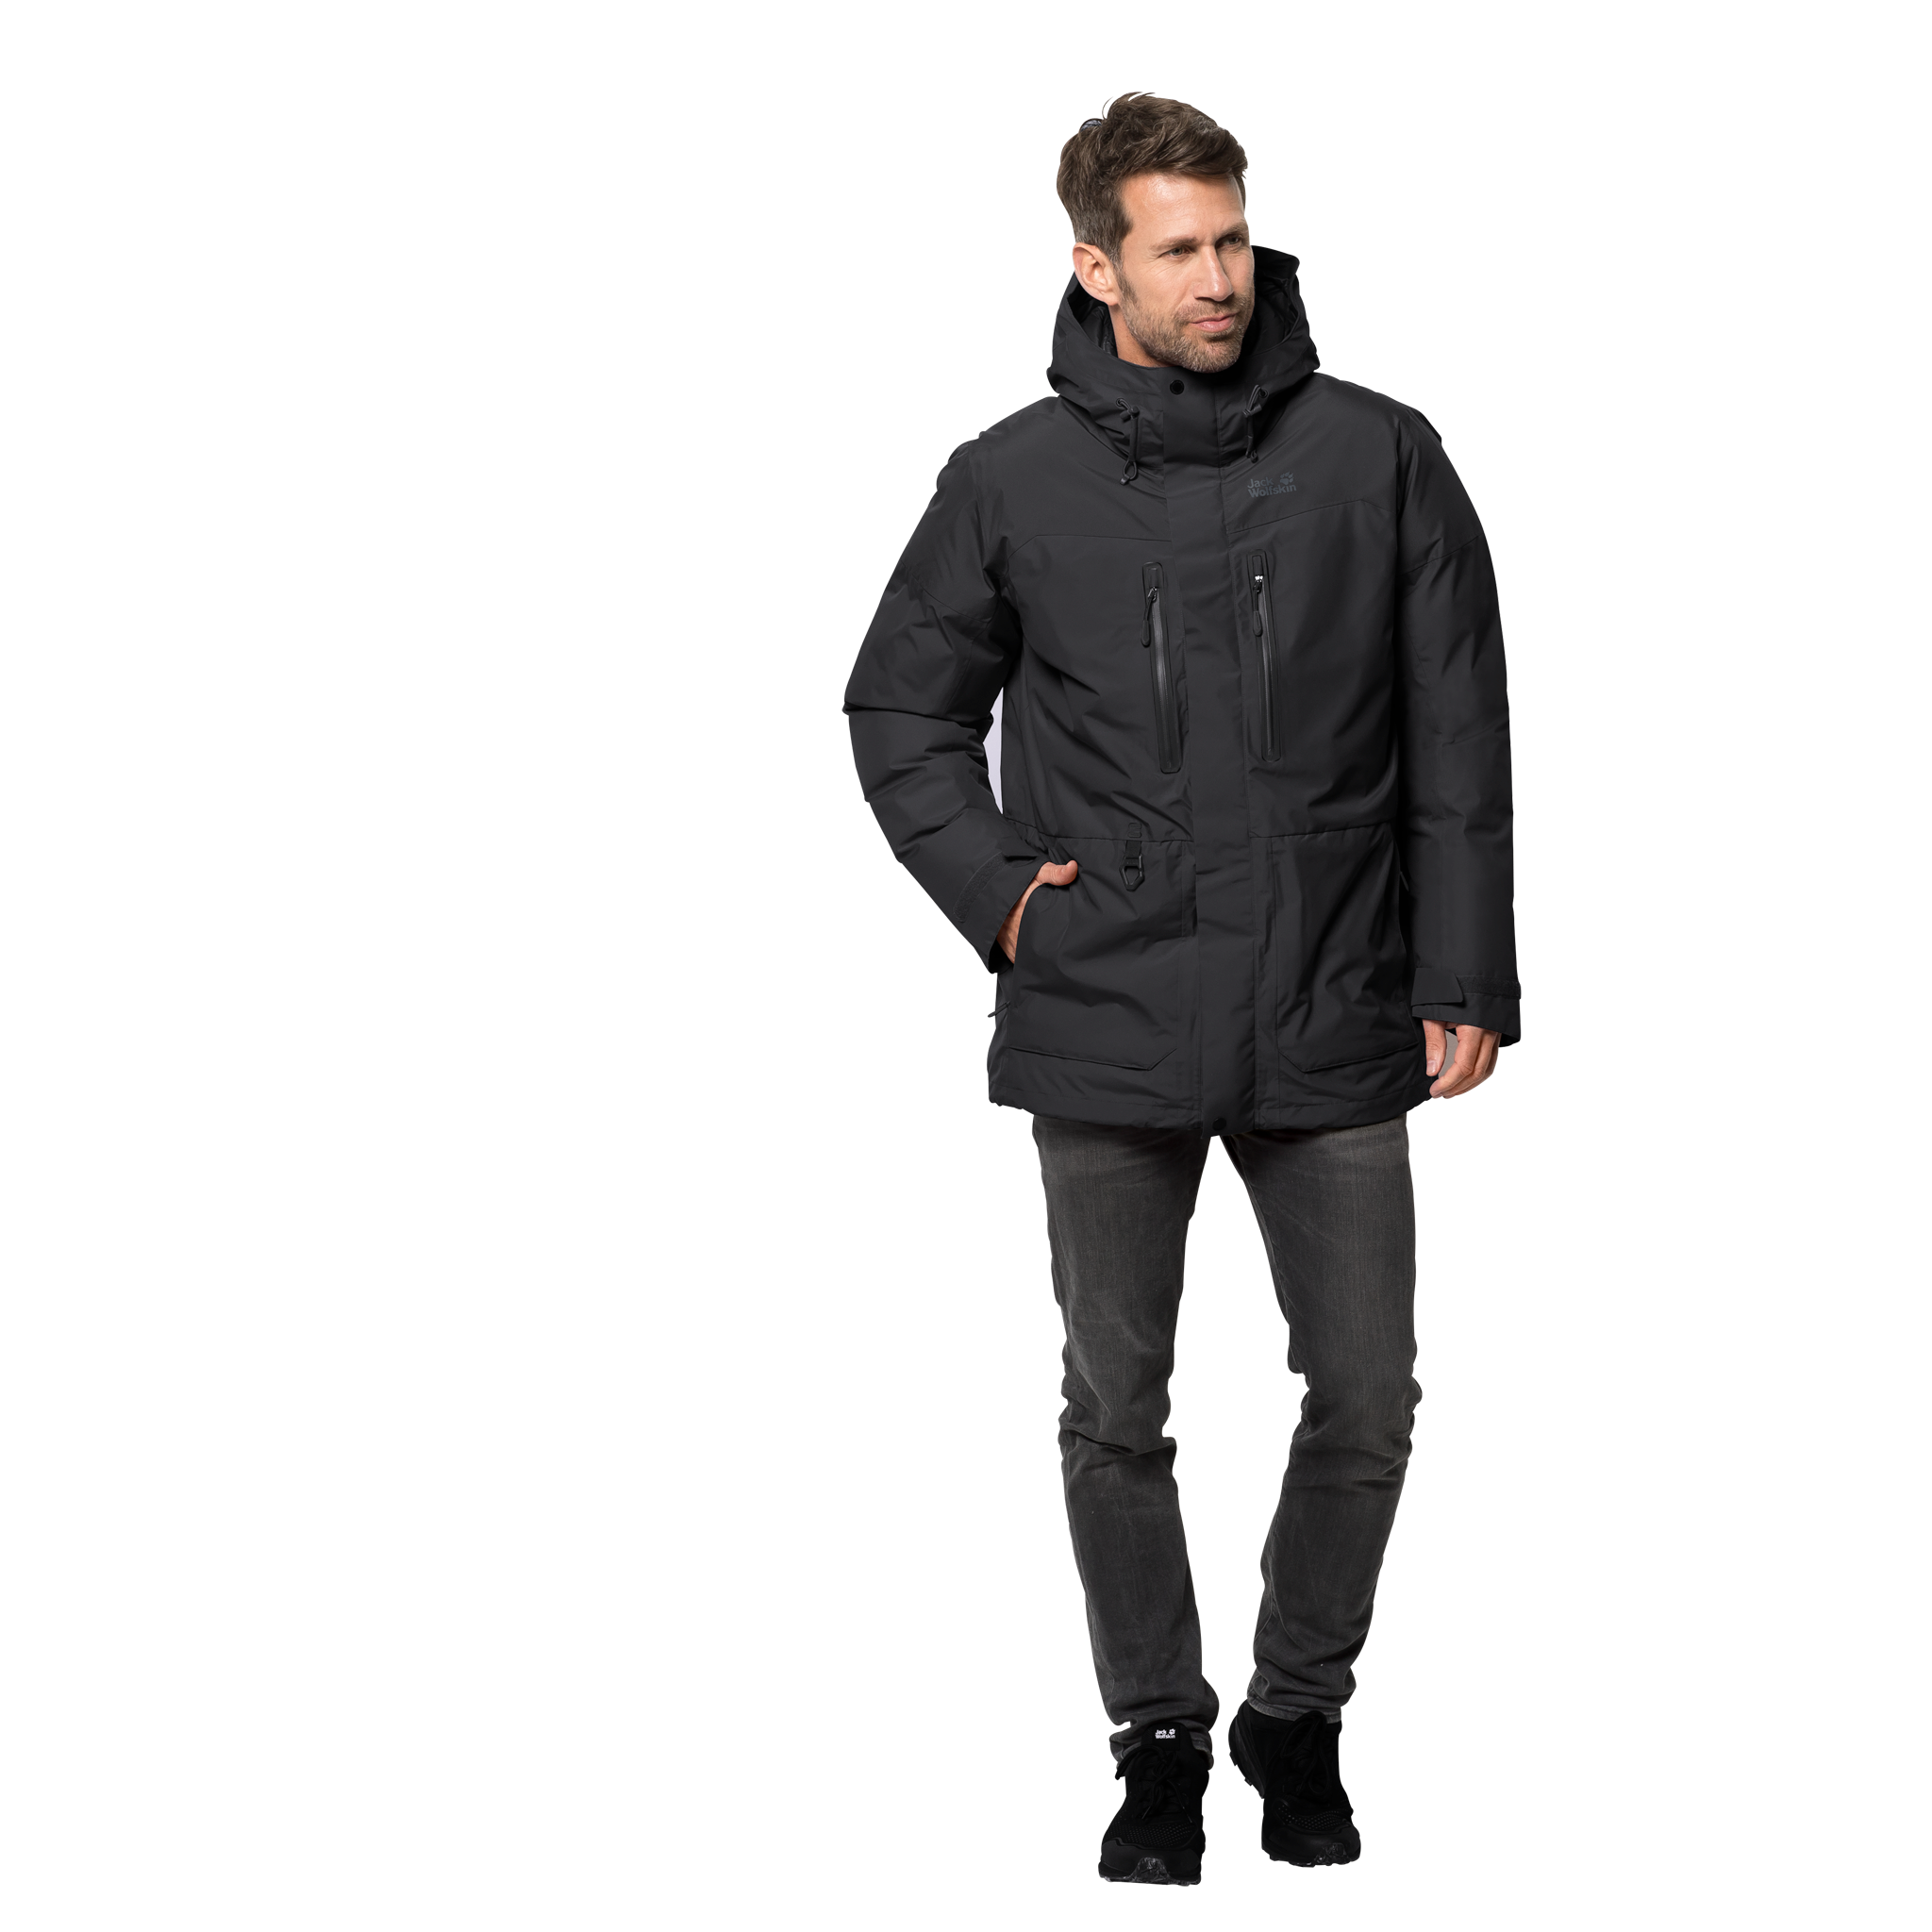 Куртка мужская NORTH ICE PARKA Jack Wolfskin — фото 2